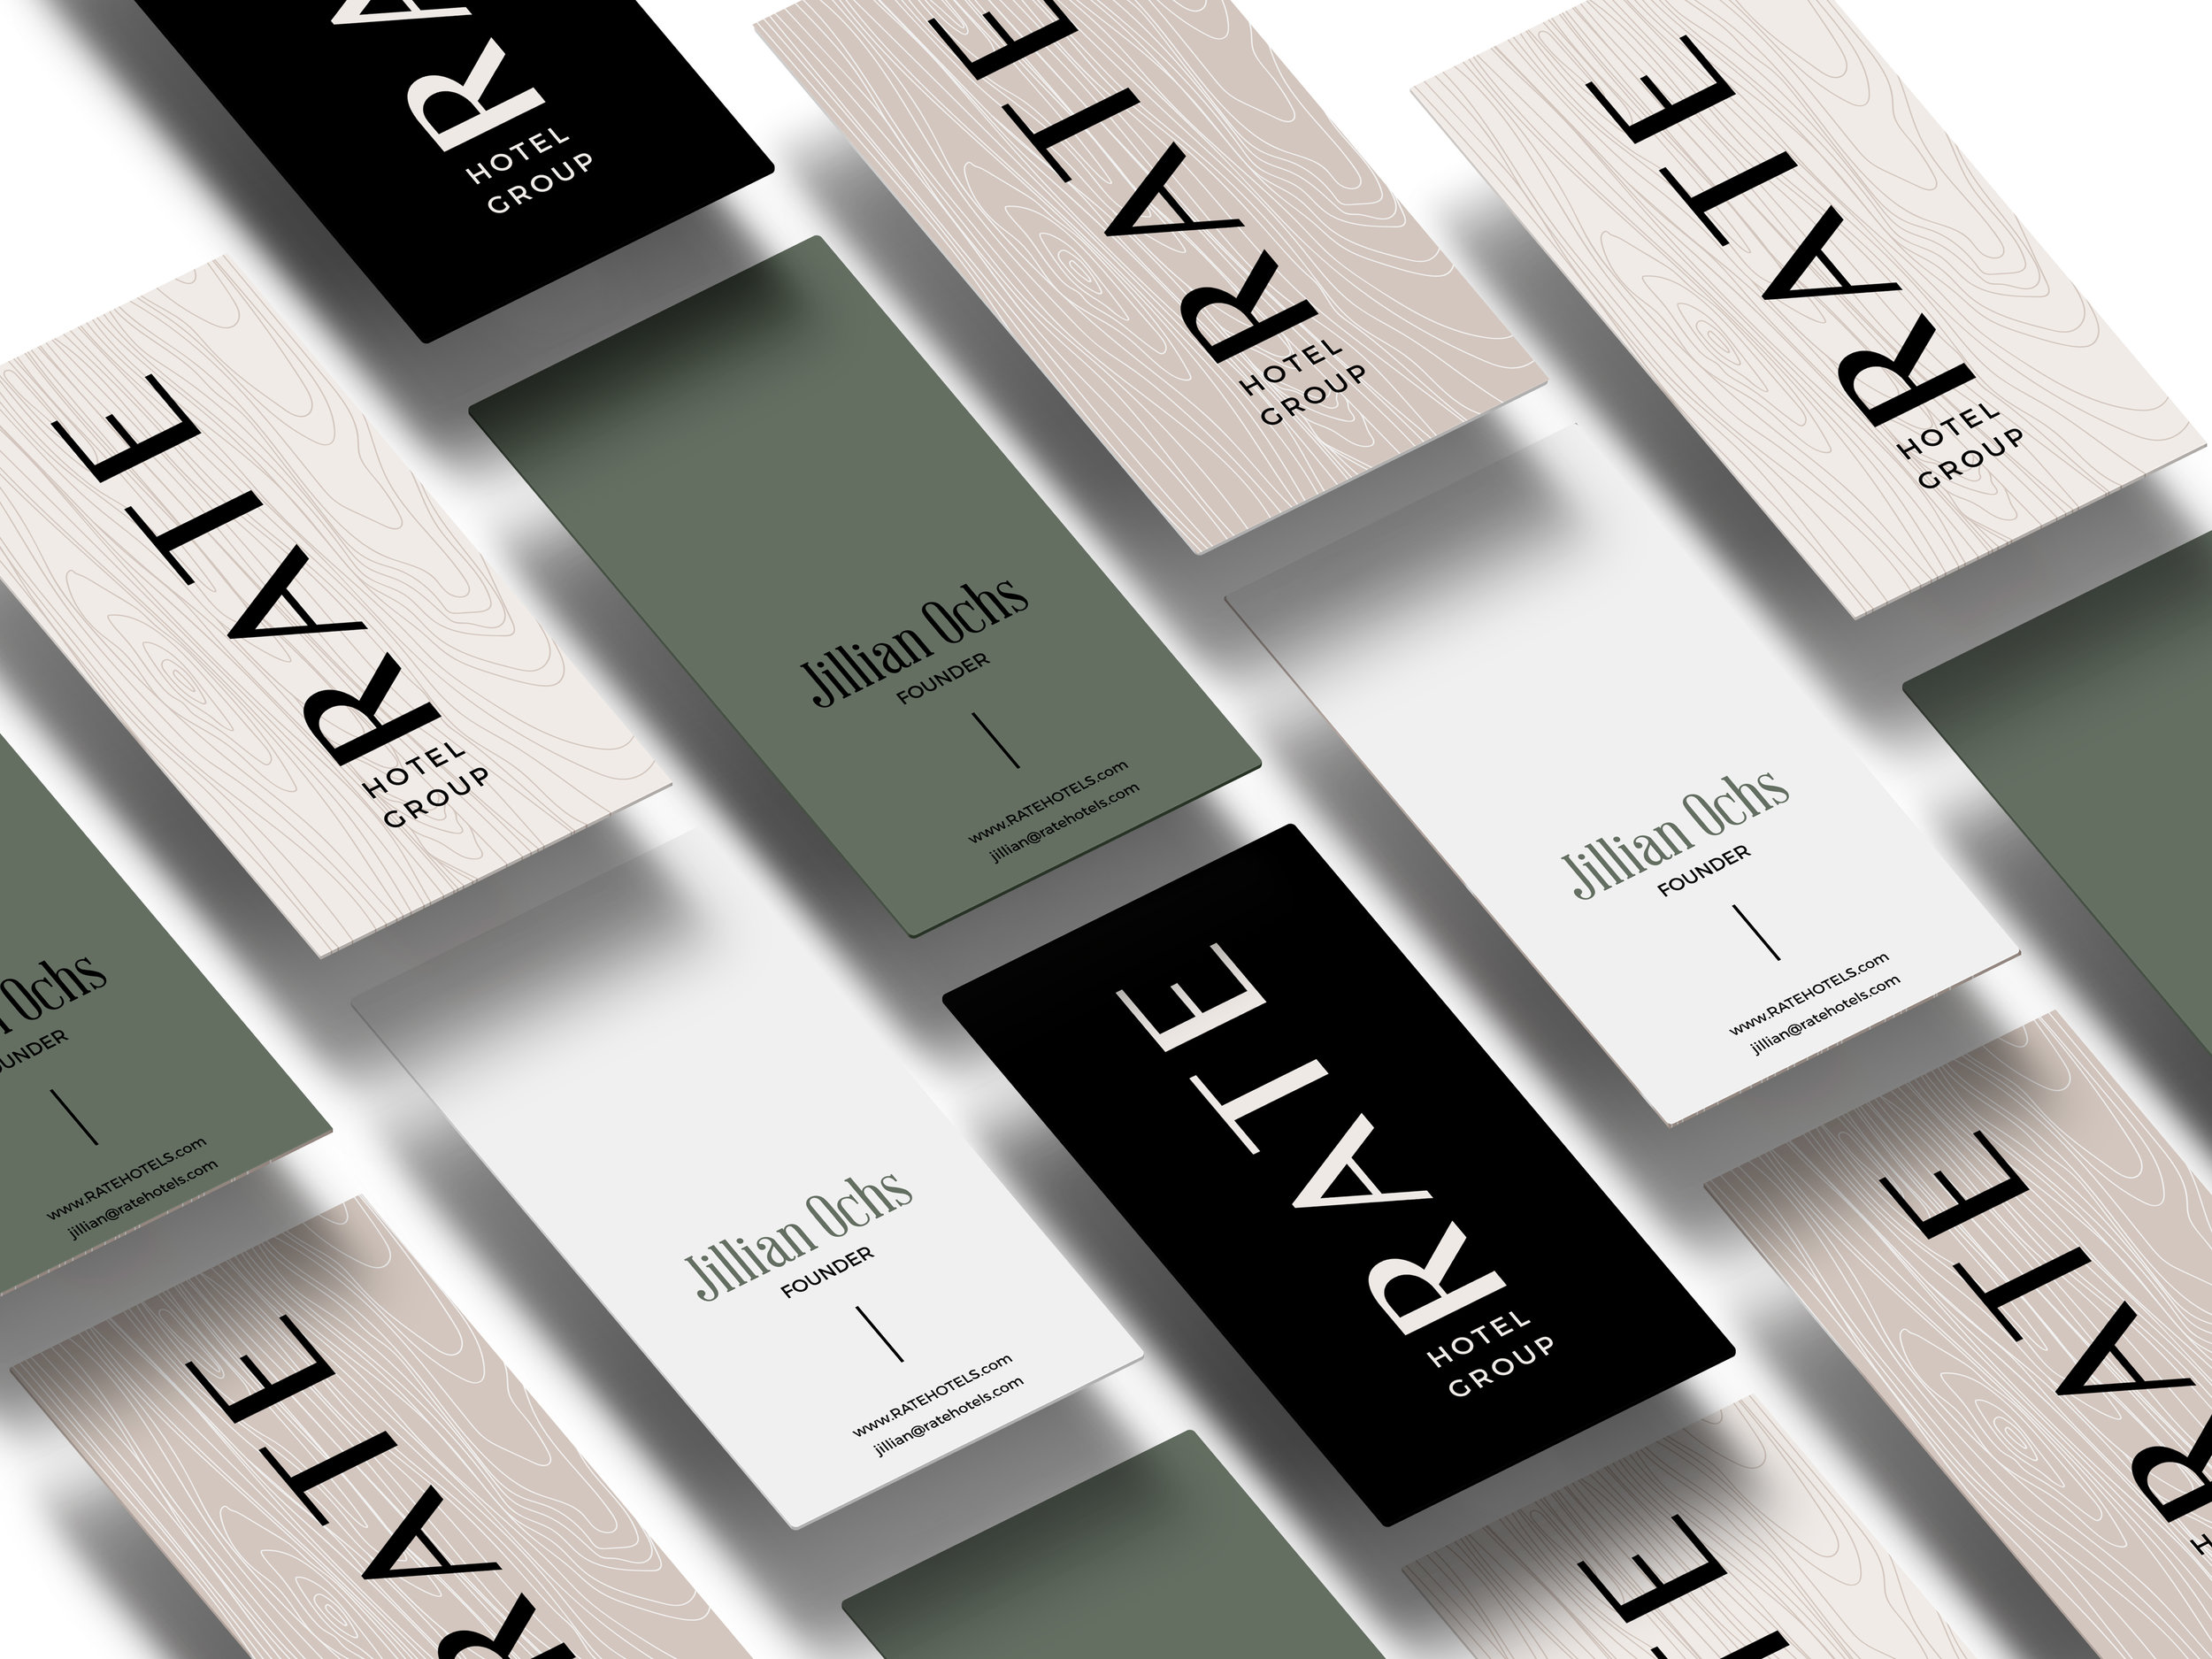 RATE Hotel Group Brand Design: Business Cards   Reux Design Co.   Boutique Branding Studio for Holistic and Conscious Small Businesses